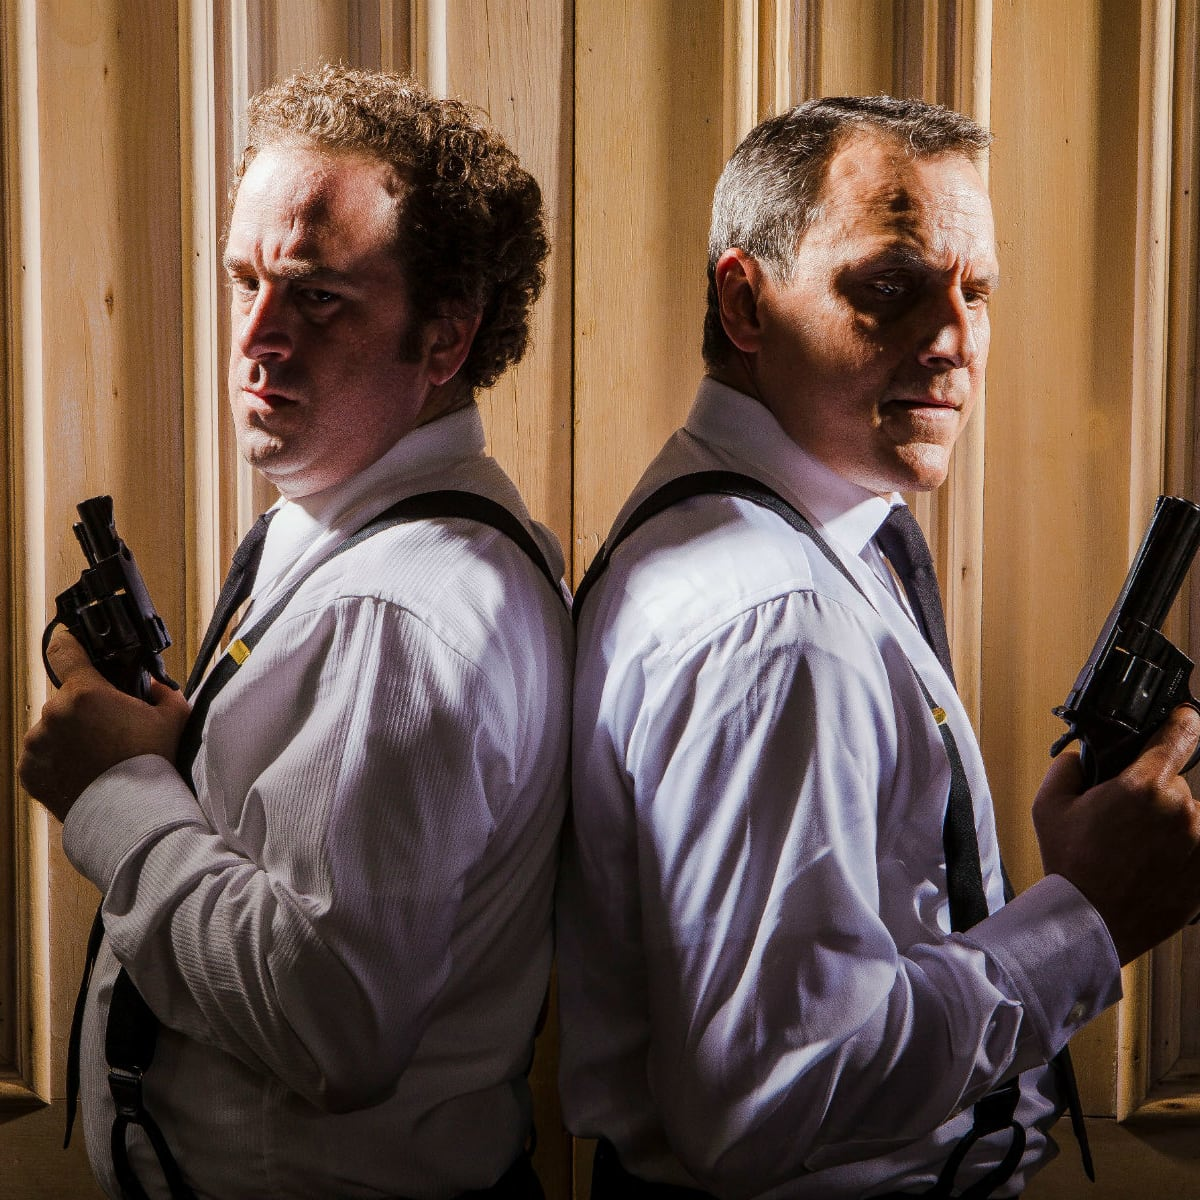 Kitchen Dog Theater presents The Dumb Waiter